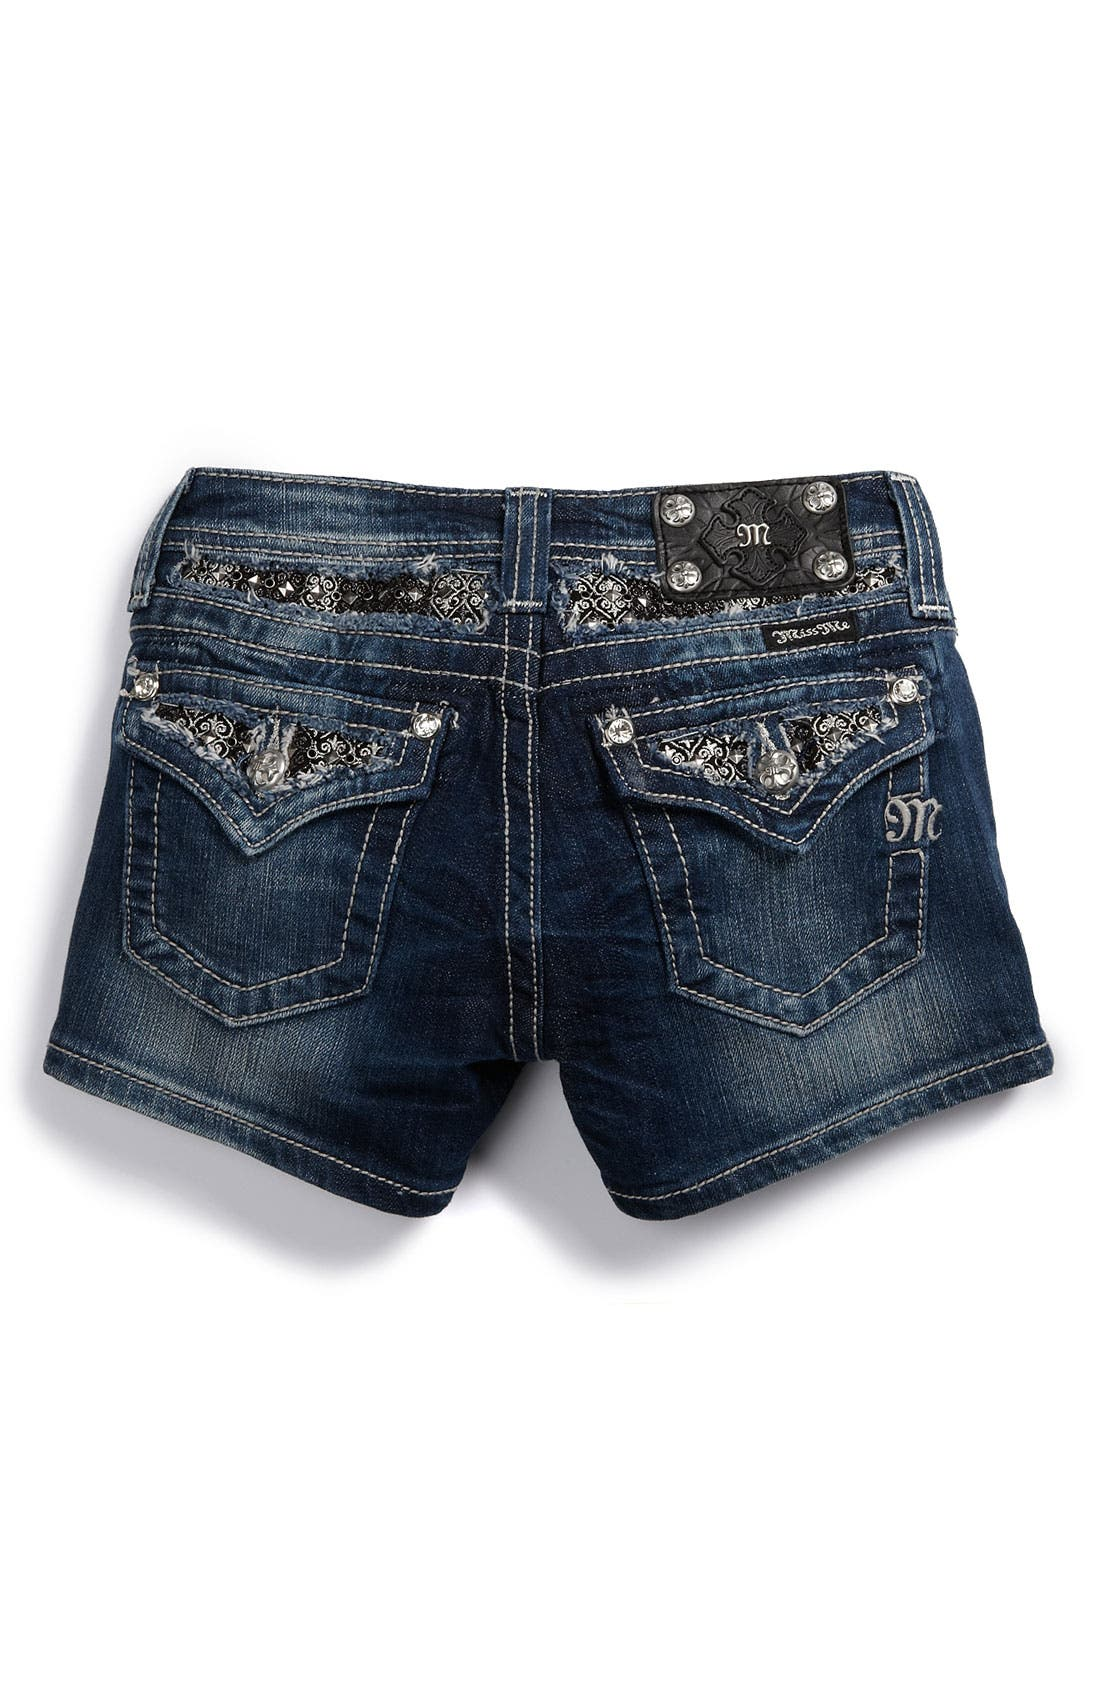 Alternate Image 1 Selected - Miss Me Pointed Flap Pocket Shorts (Big Girls)